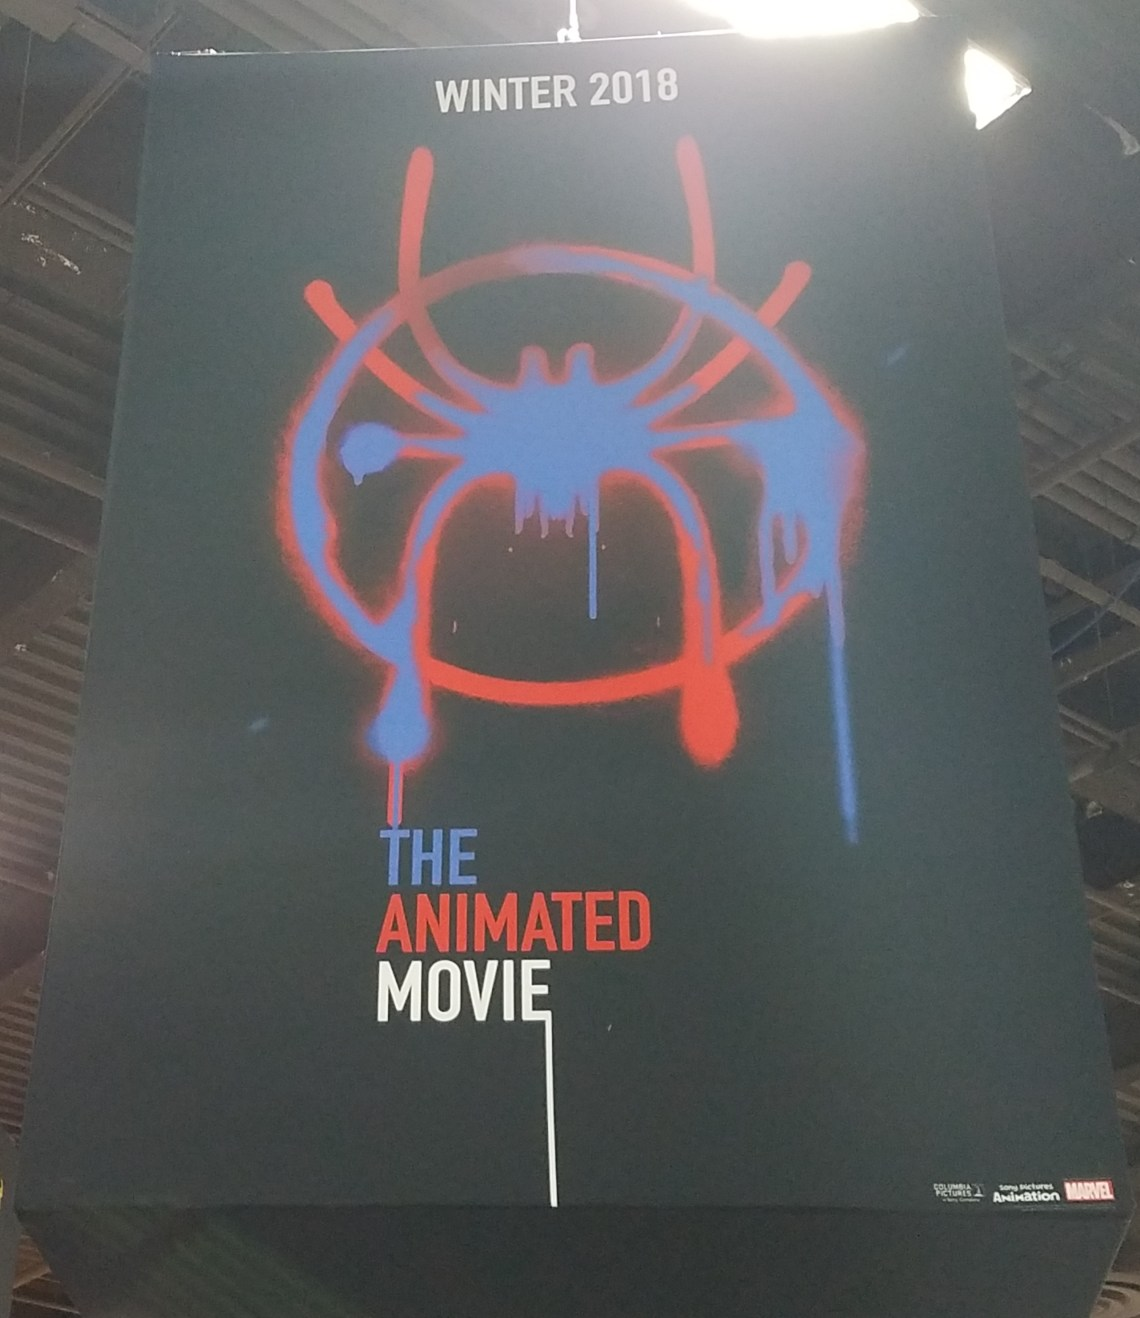 spider-man-animated-movie-banner-expo